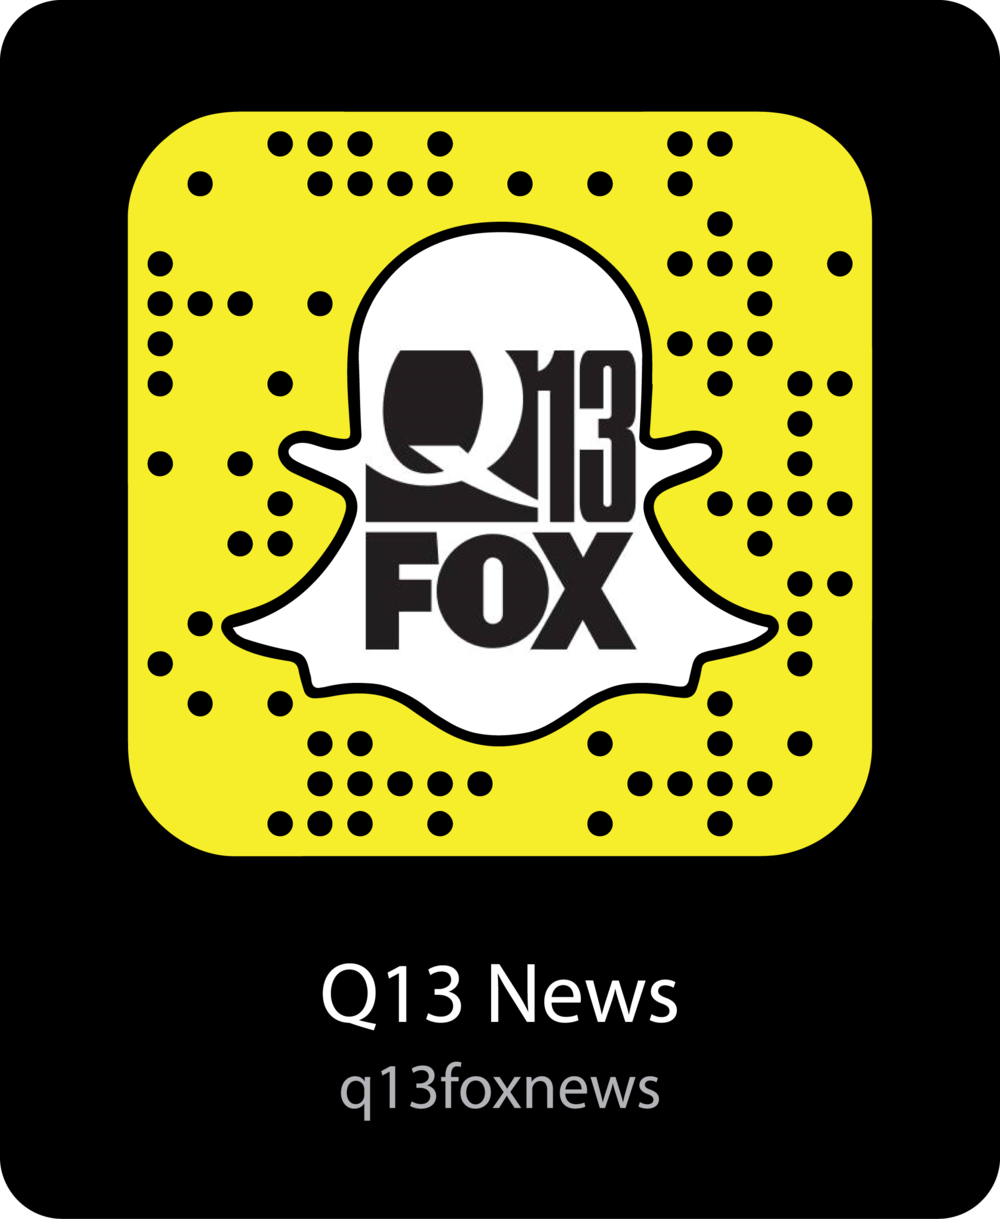 Q13 News q13foxnews-News-snapchat-snapcode.png